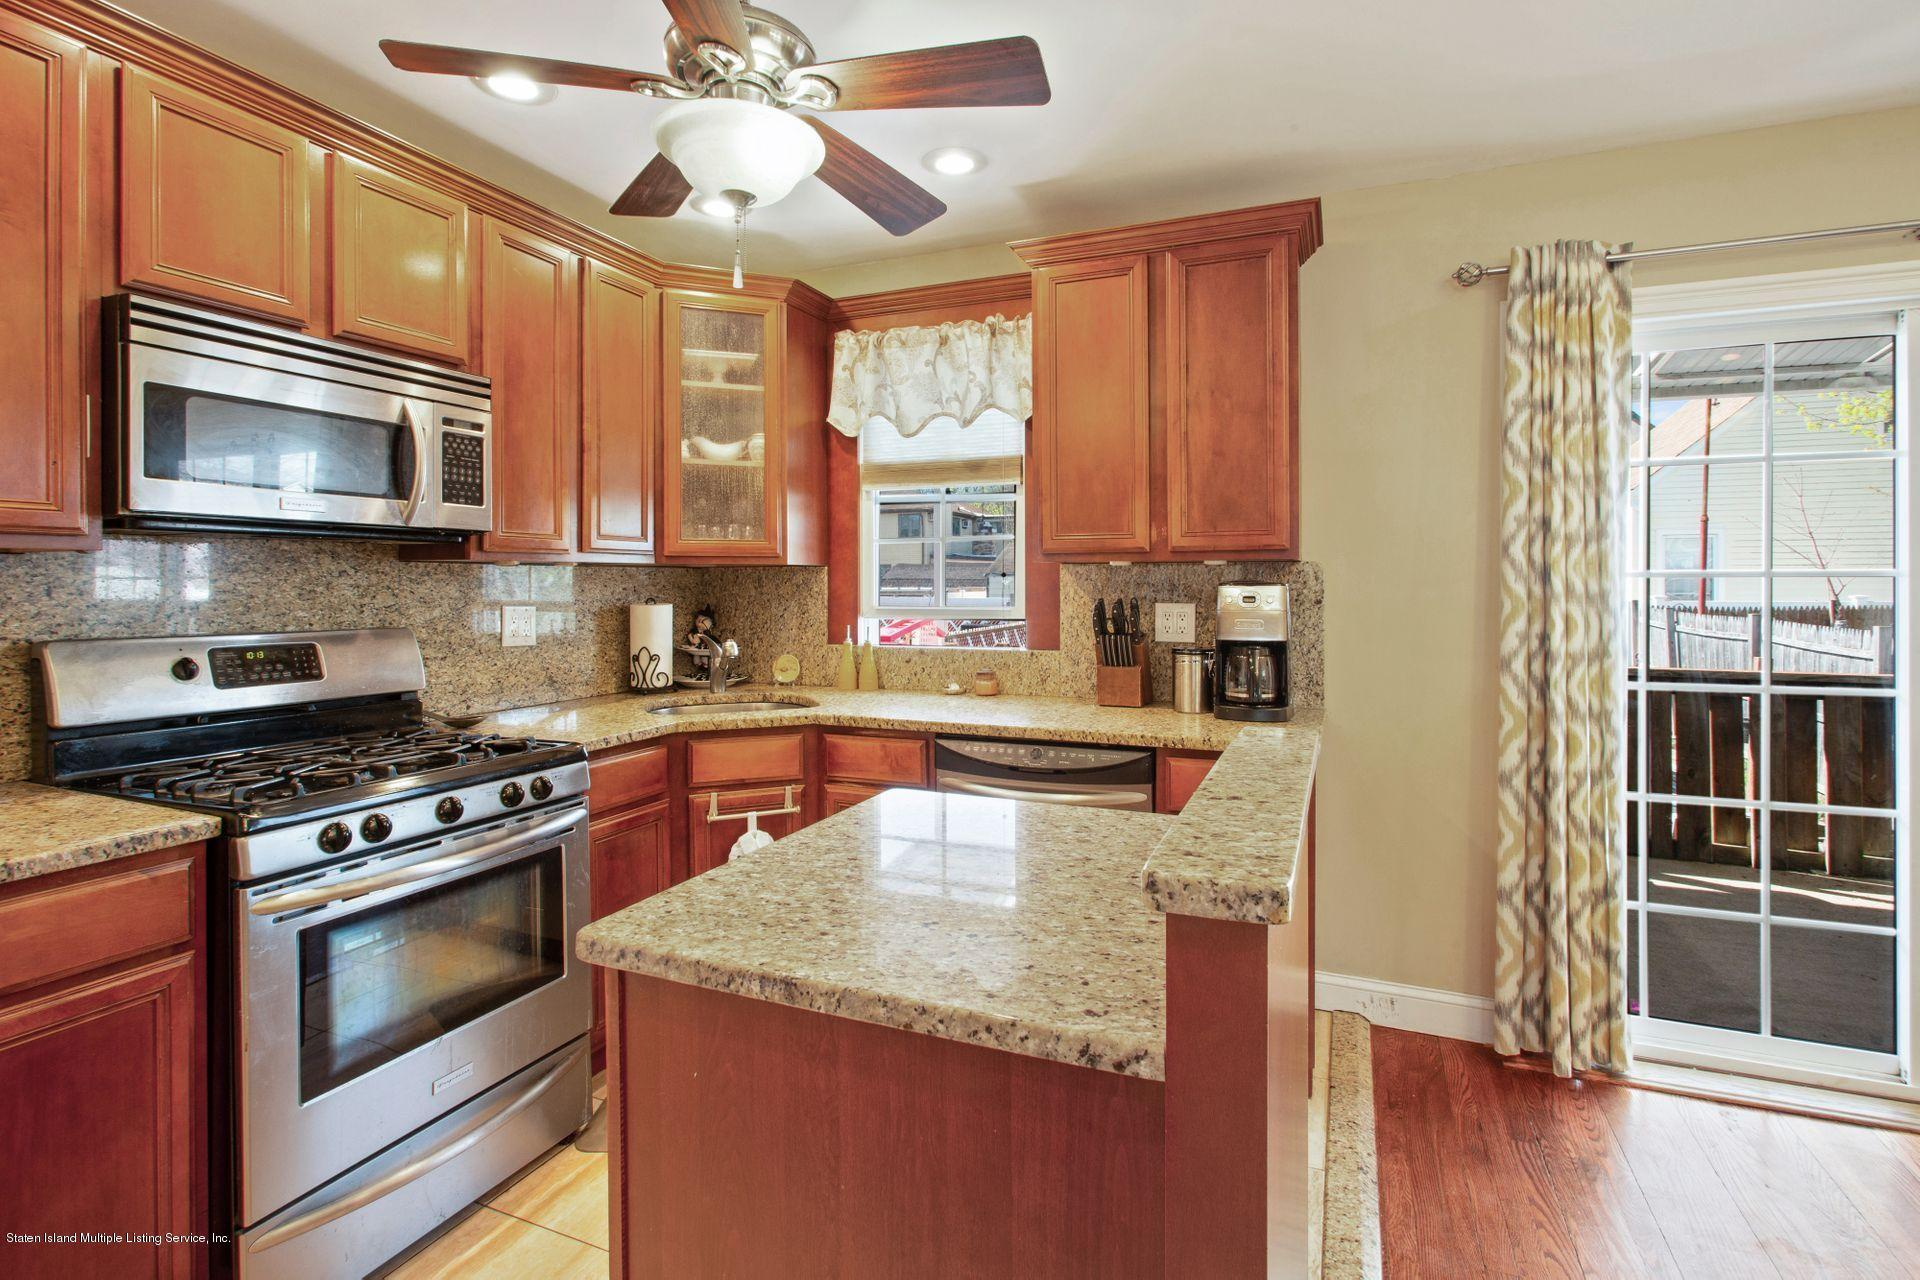 Single Family - Detached 252 Waters Avenue  Staten Island, NY 10314, MLS-1128050-10